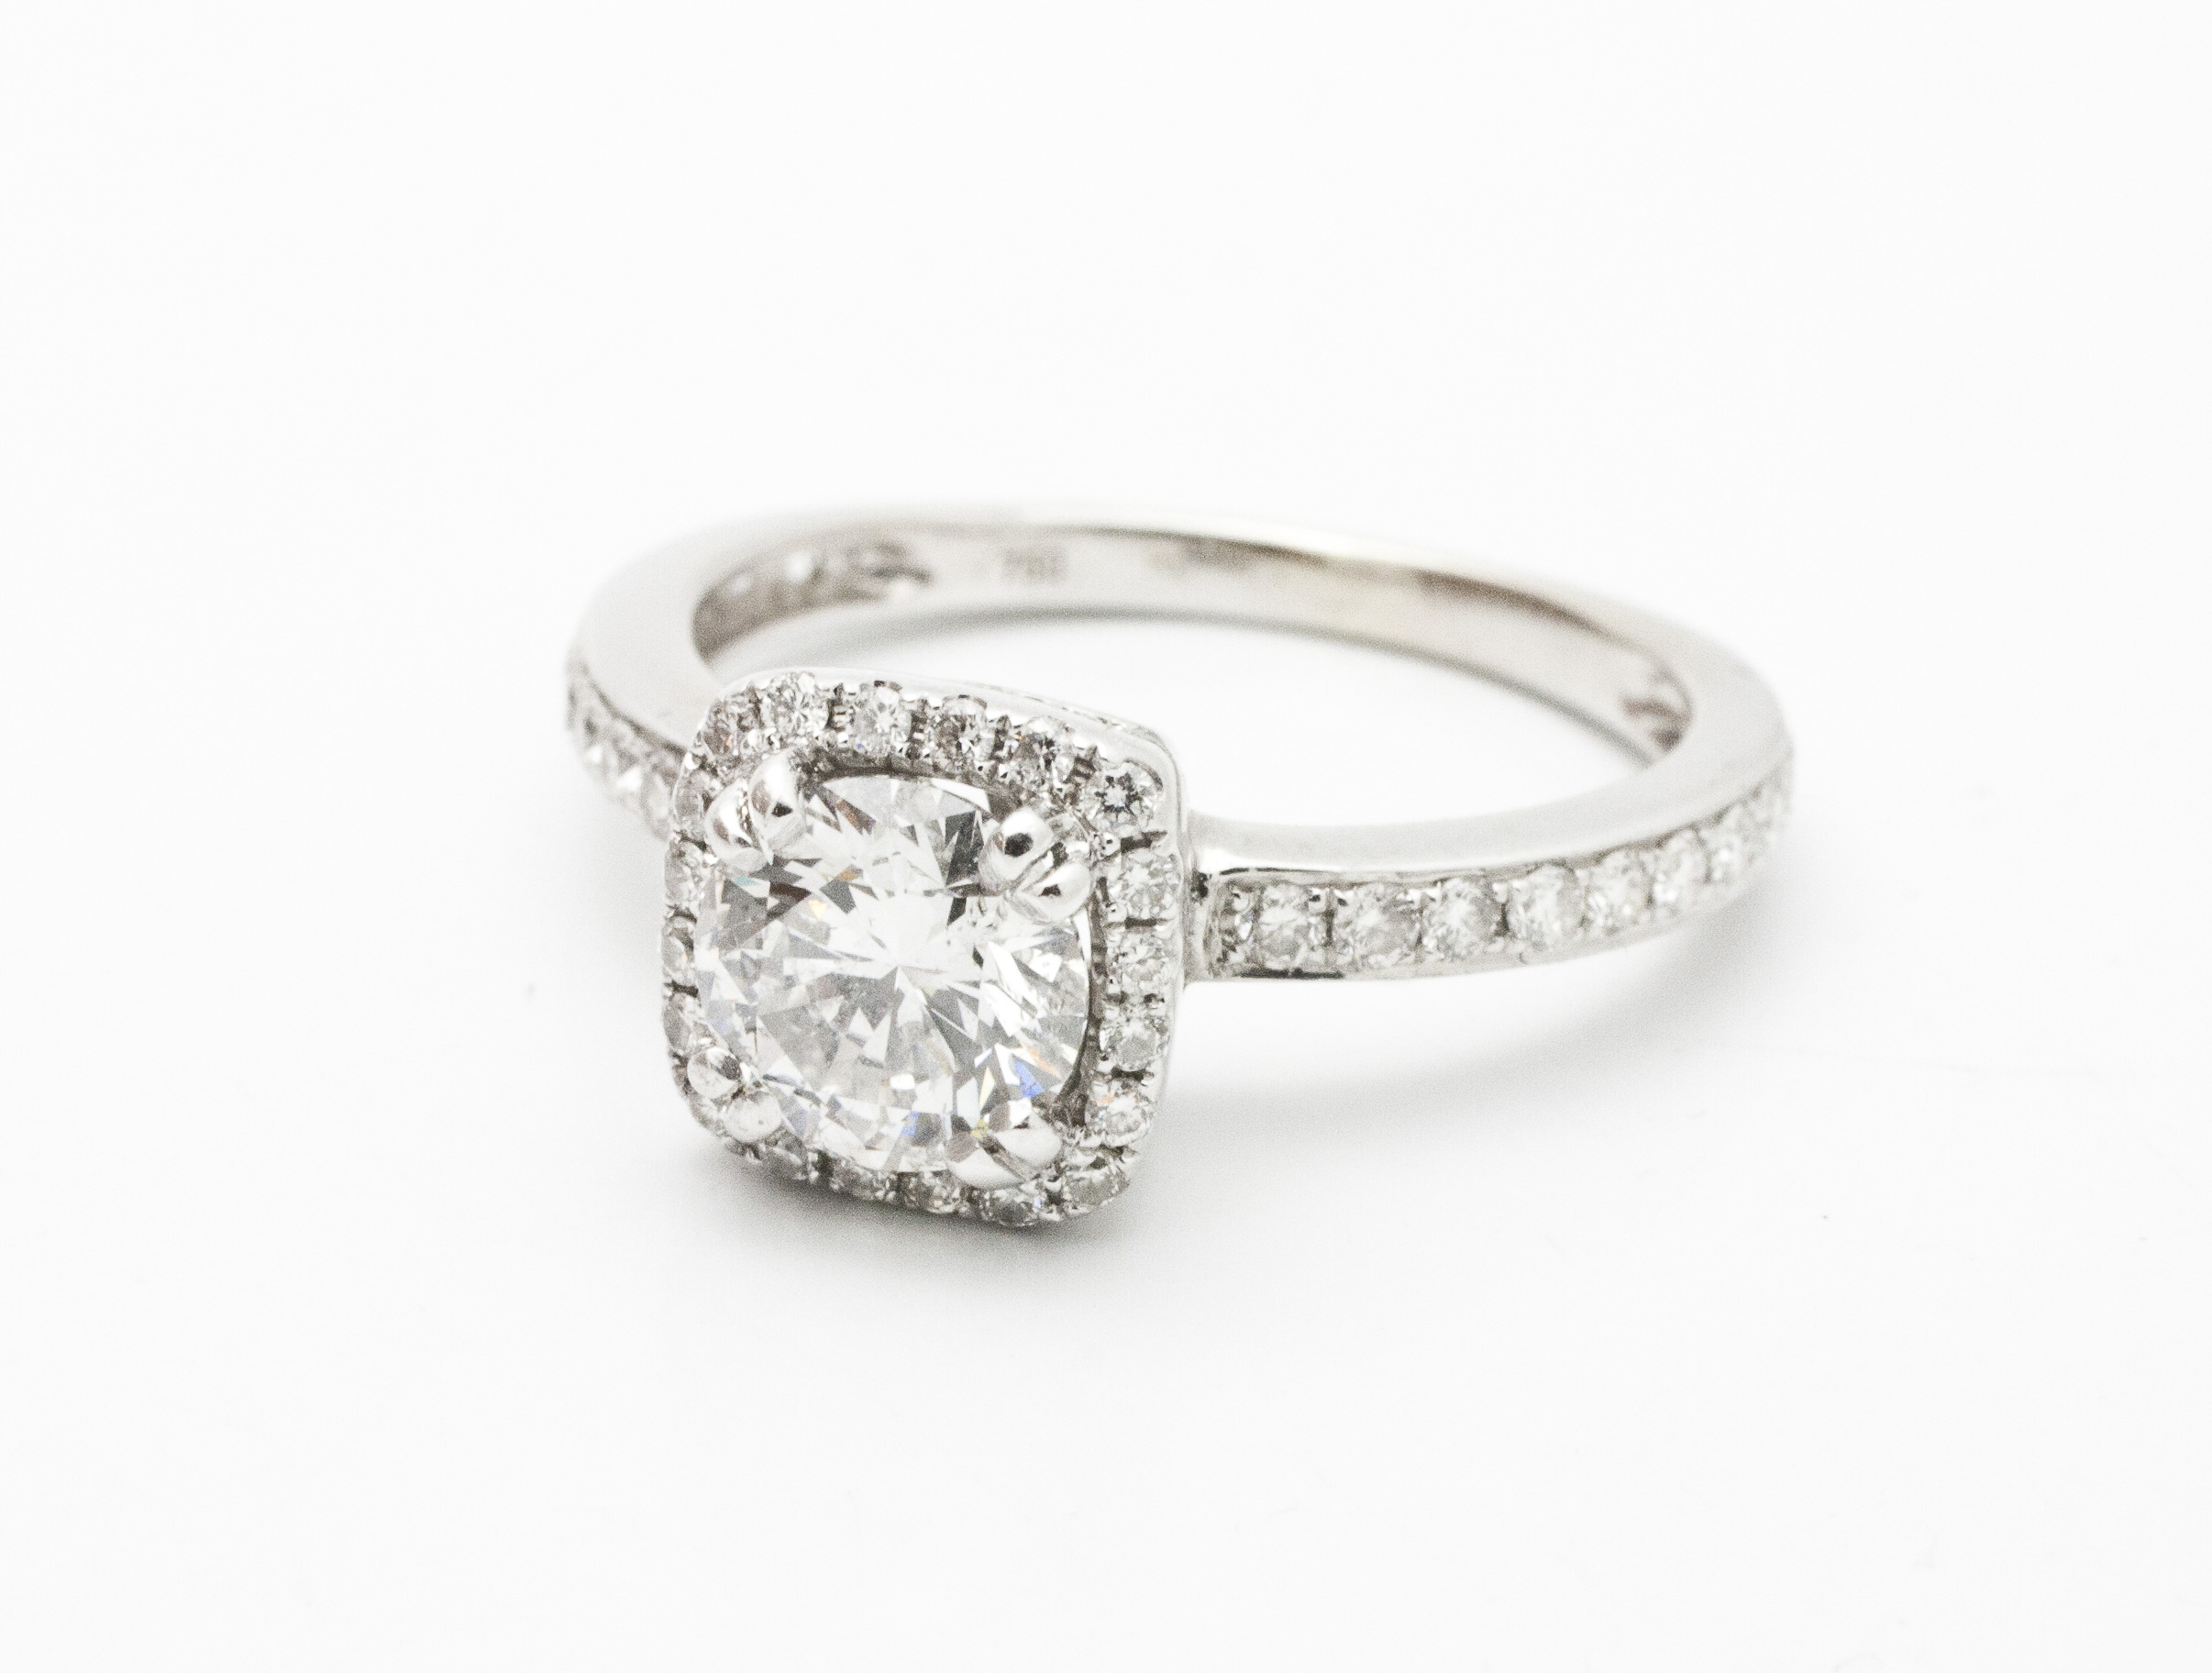 0.90ct round brilliant cut diamond cemtre stone surrounded by cushion shaped diamond halo,0.42tcw diamond side stones, 18kt white gold.  Starting at $7700 for this stone size and quality  Can be customizable with any stone, size, metal etc.